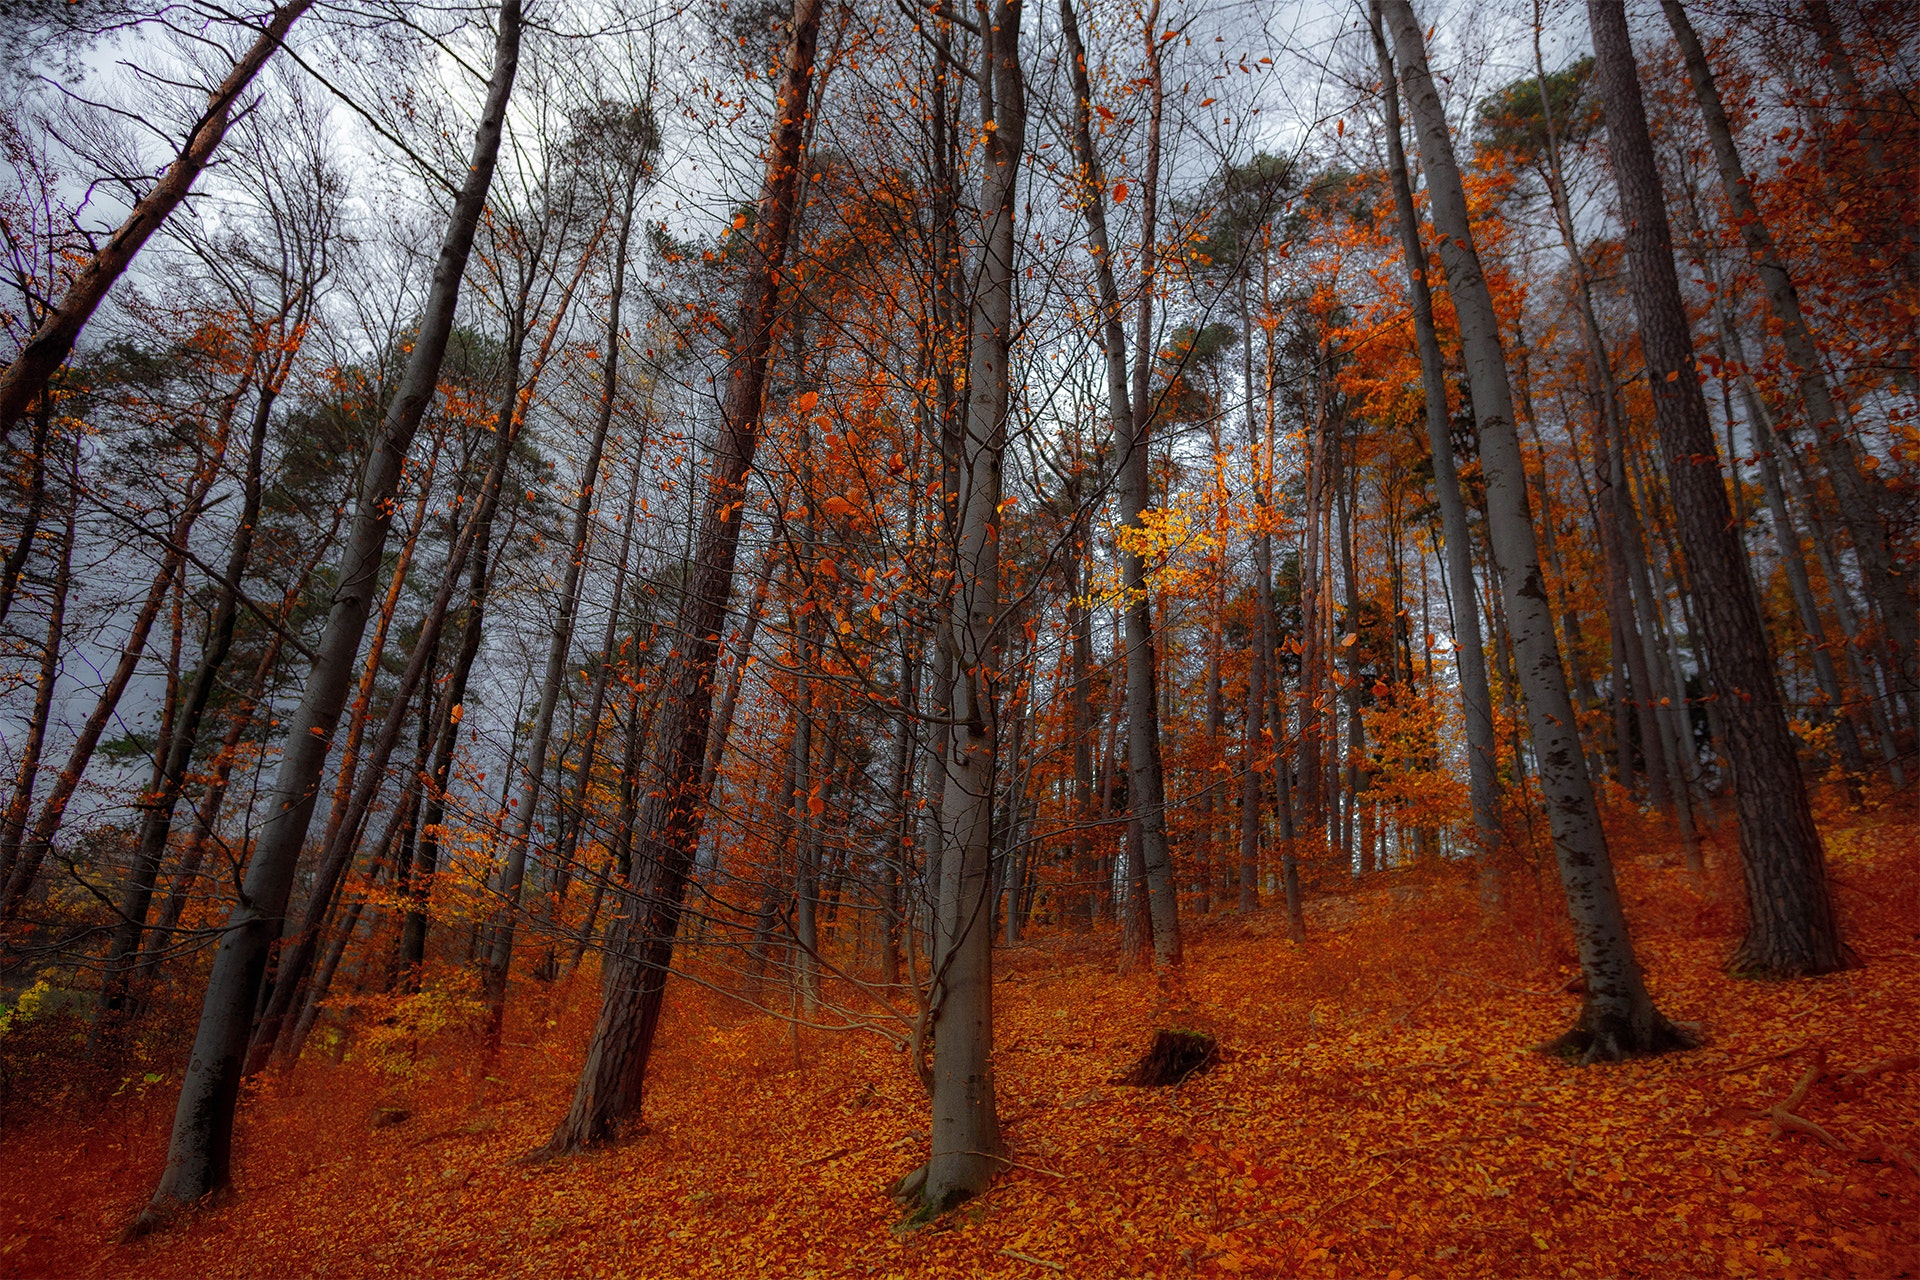 Orange leave trees photo